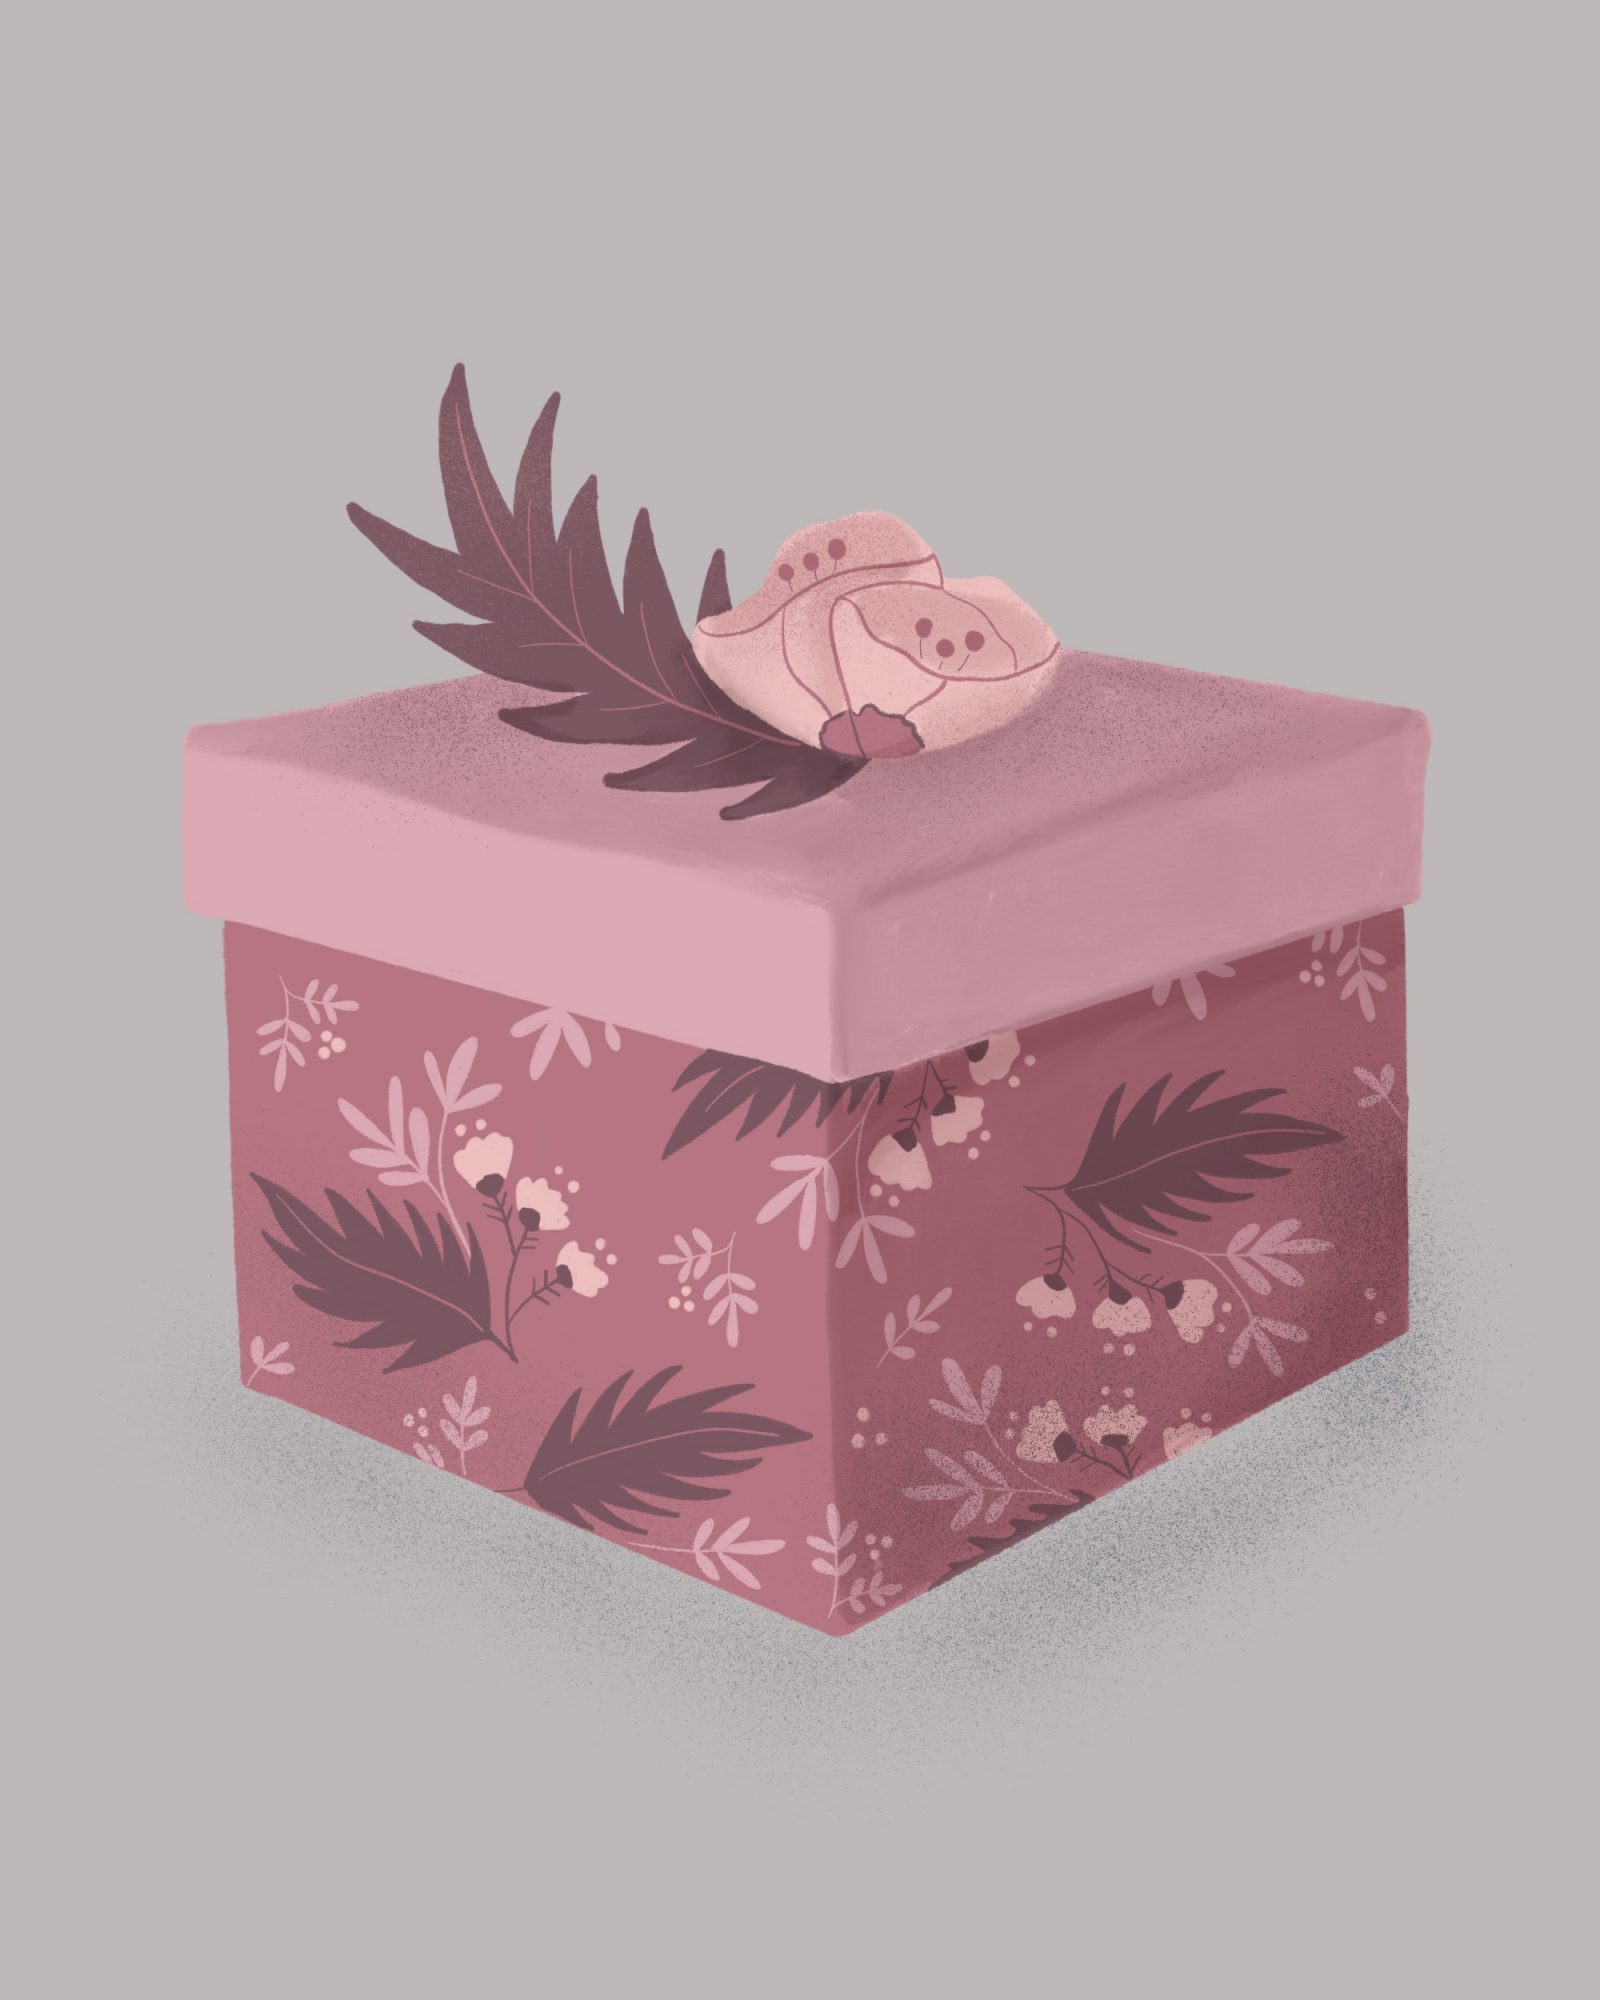 Maid of Honor Gift Guide, Illustrated Gift Box